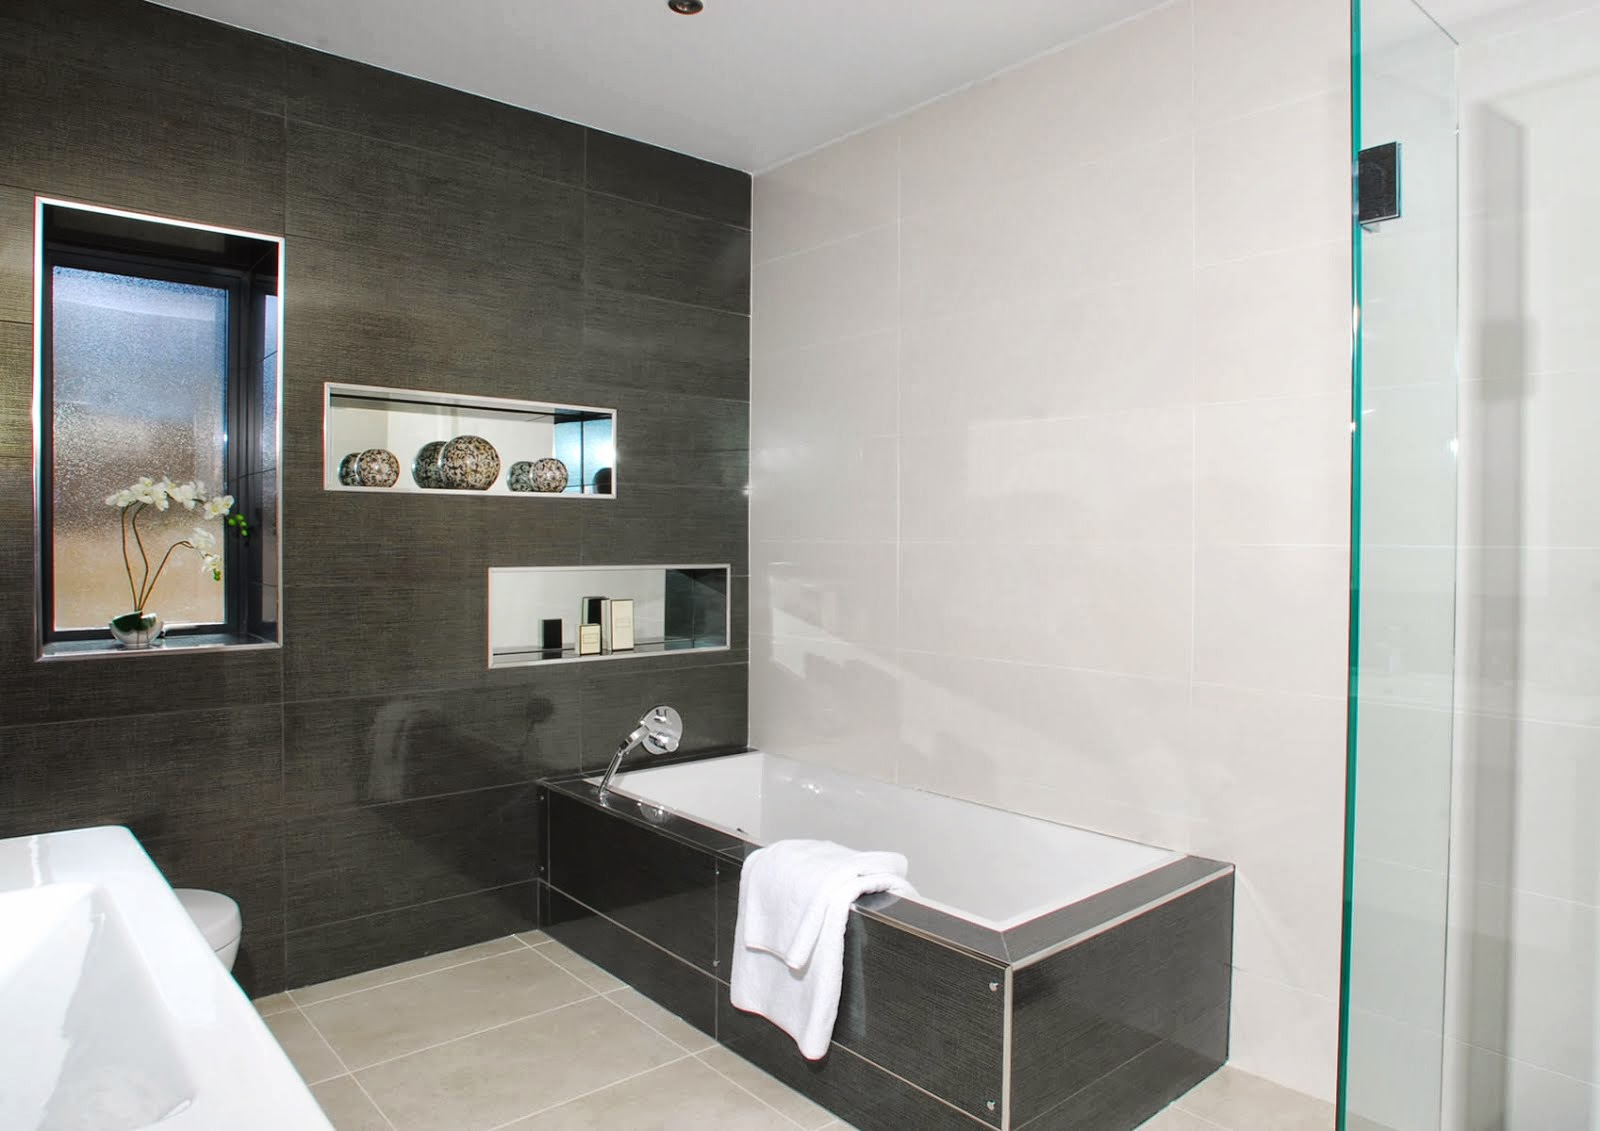 Bathroom design ideas uk for Bathrooms designs